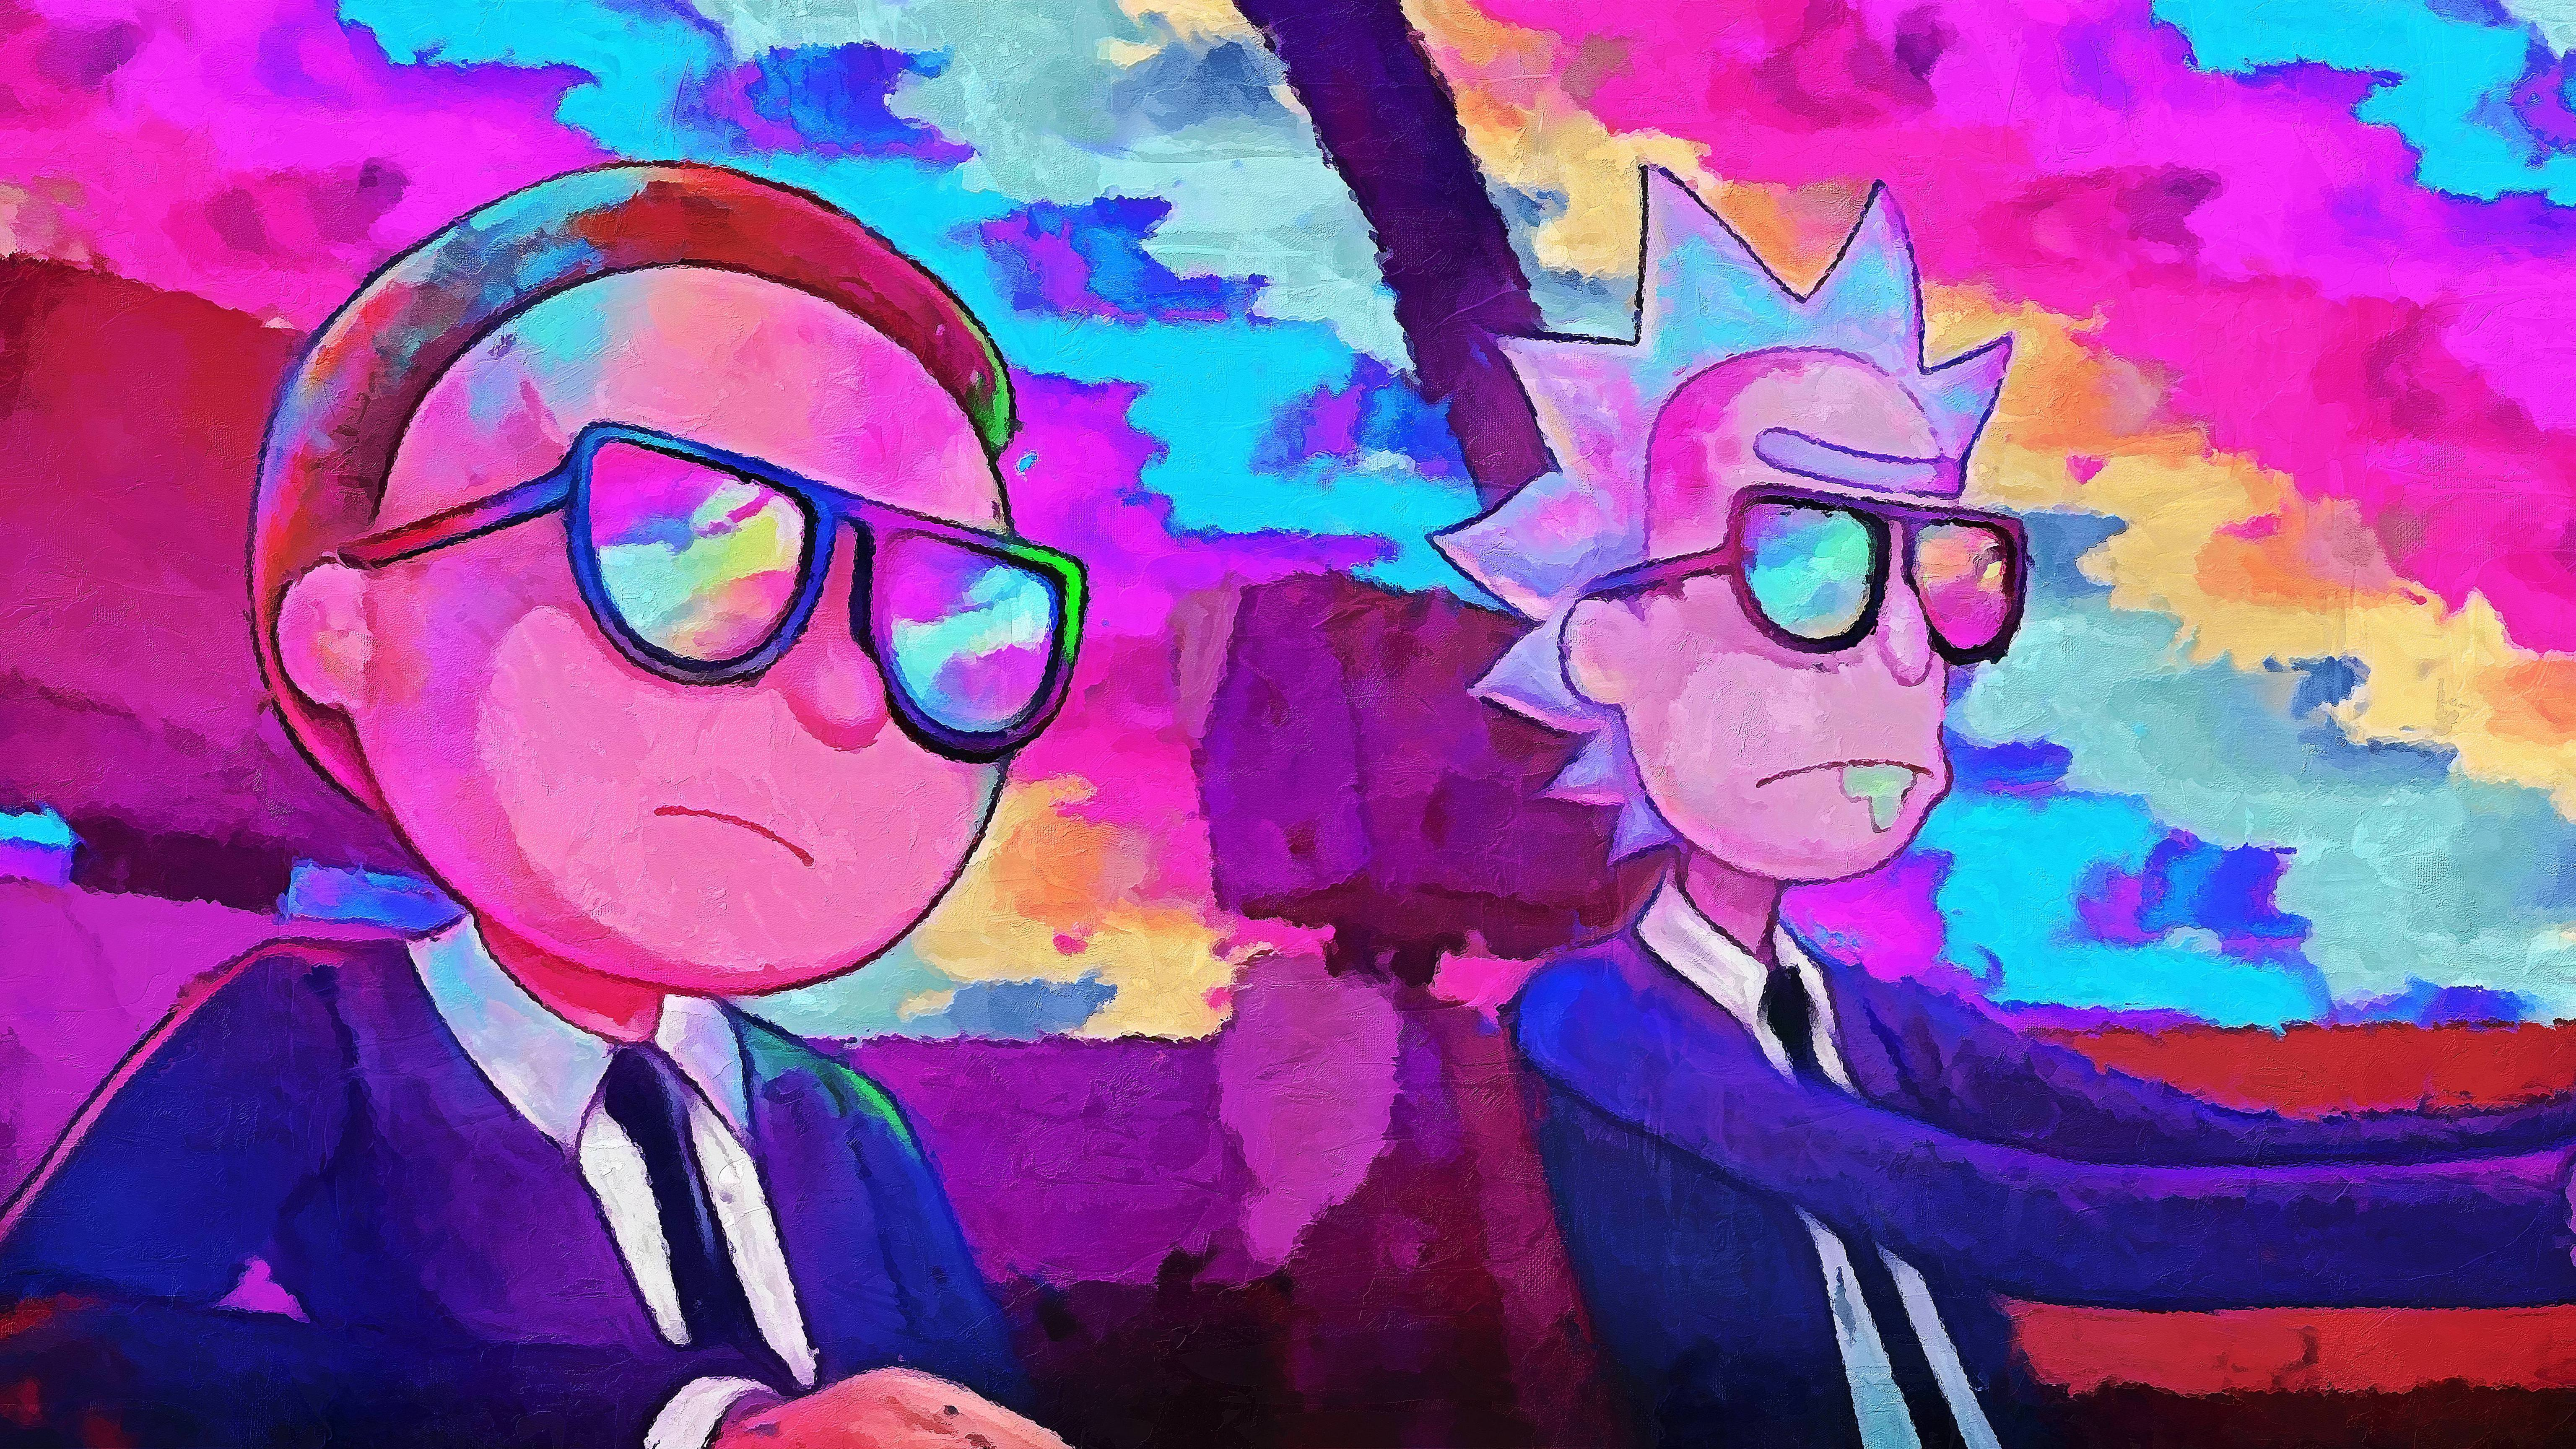 Rick And Morty Wallpaper 4k   WallpaperHDwiki 6144x3456